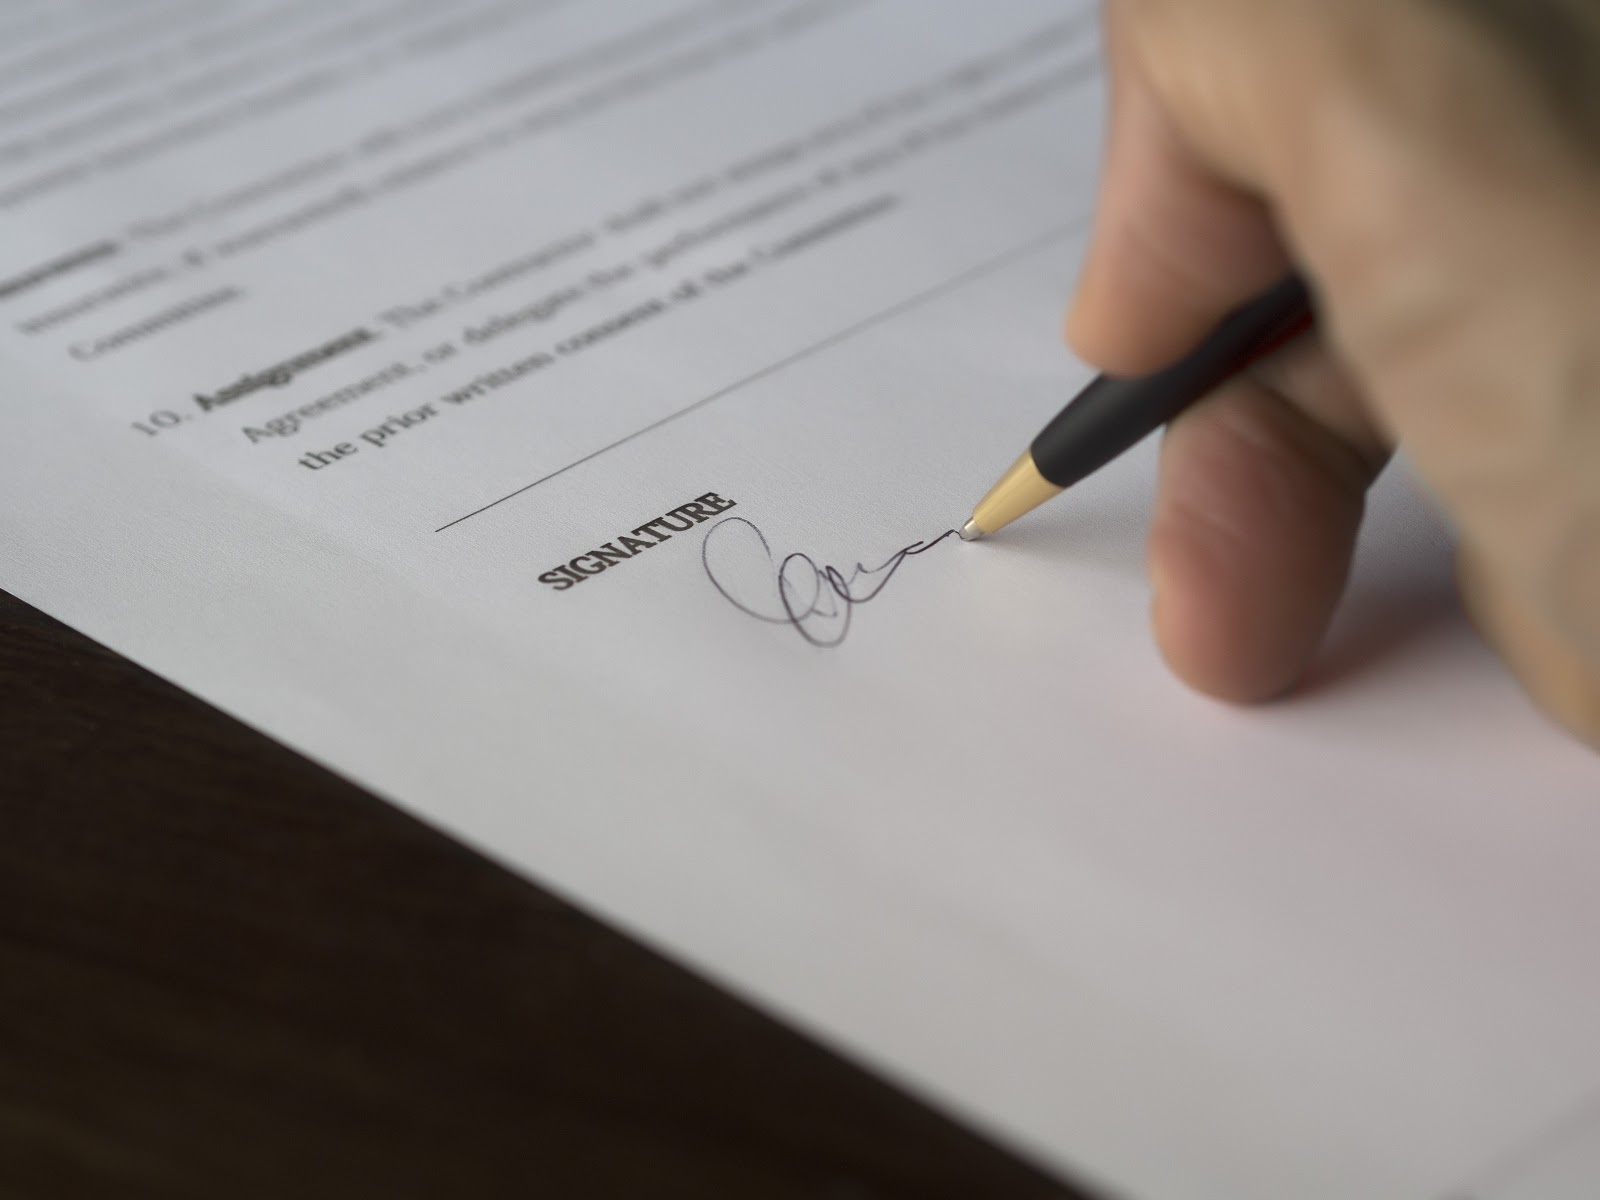 Signing up with an attorney in NJ